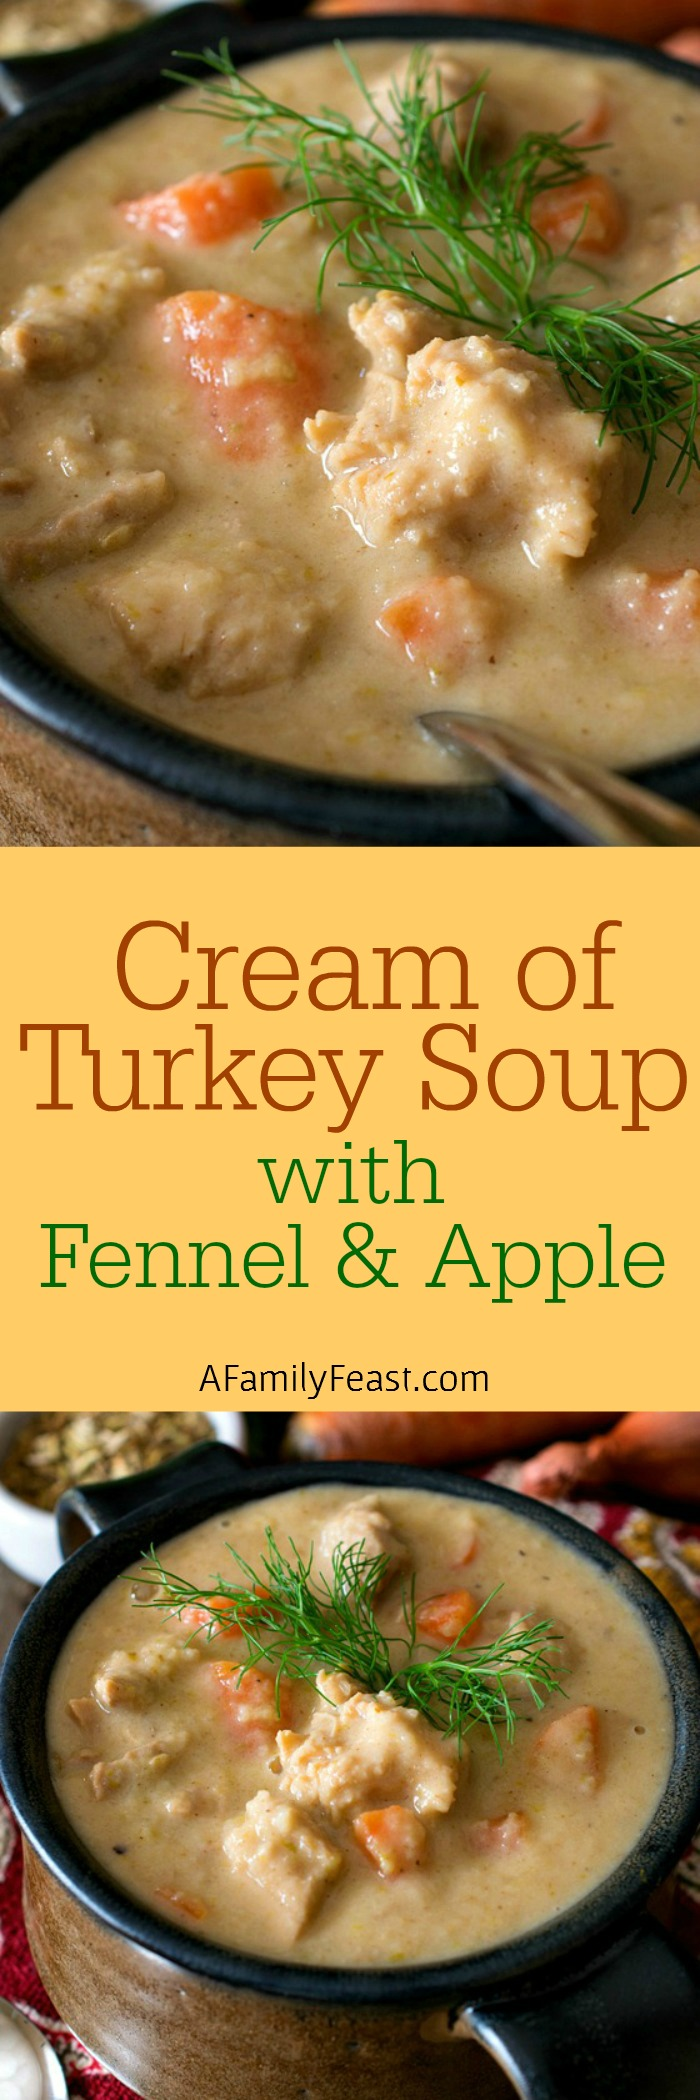 Cream of Turkey Soup with Fennel and Apple - Not your average cream of turkey soup! Great for cooking with Thanksgiving leftovers.